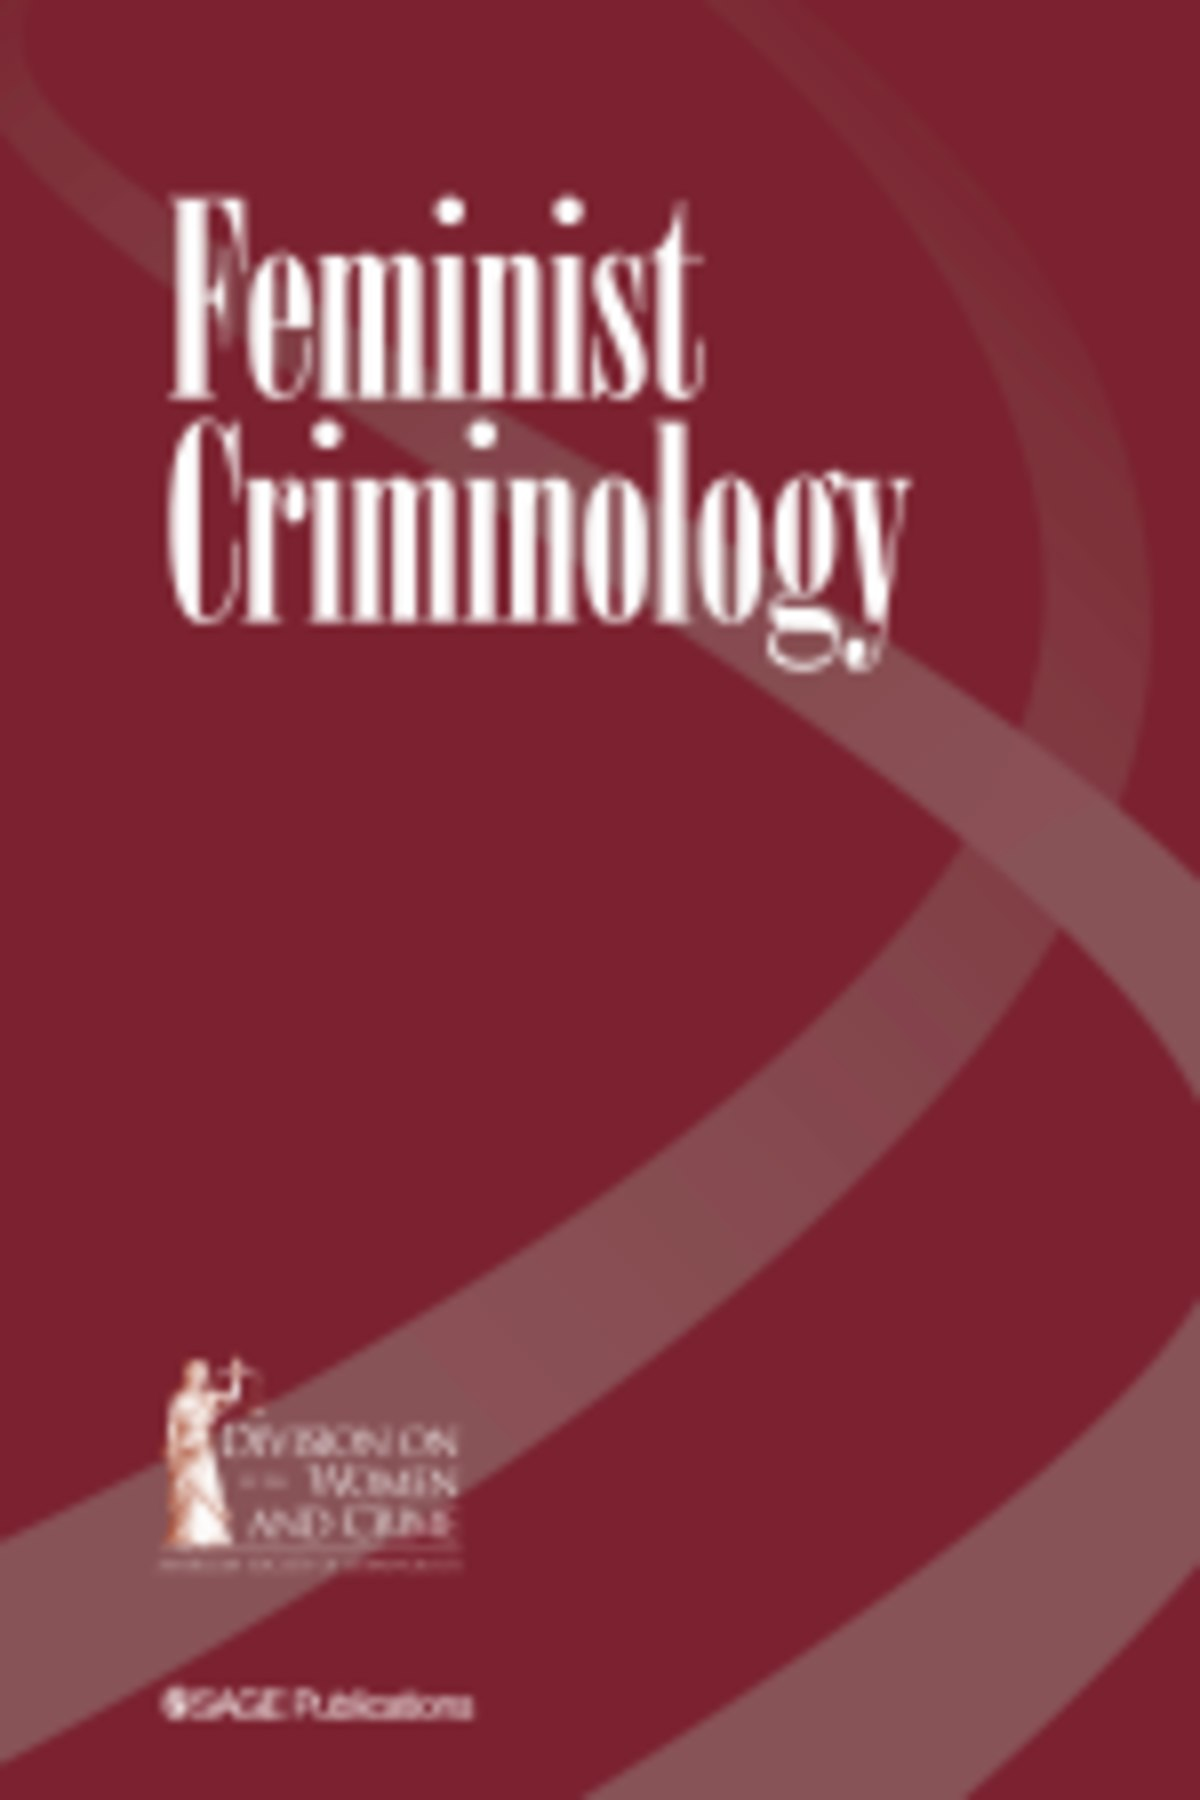 the influence of feminism on criminology Will appeal to a wide audience in women's studies/feminism, sociology, criminology and the influence of feminism on criminology introduction toryill deacon crime in context how has feminist thought influenced the discipline of criminology chapter 5 a contemporary reflection on feminist.